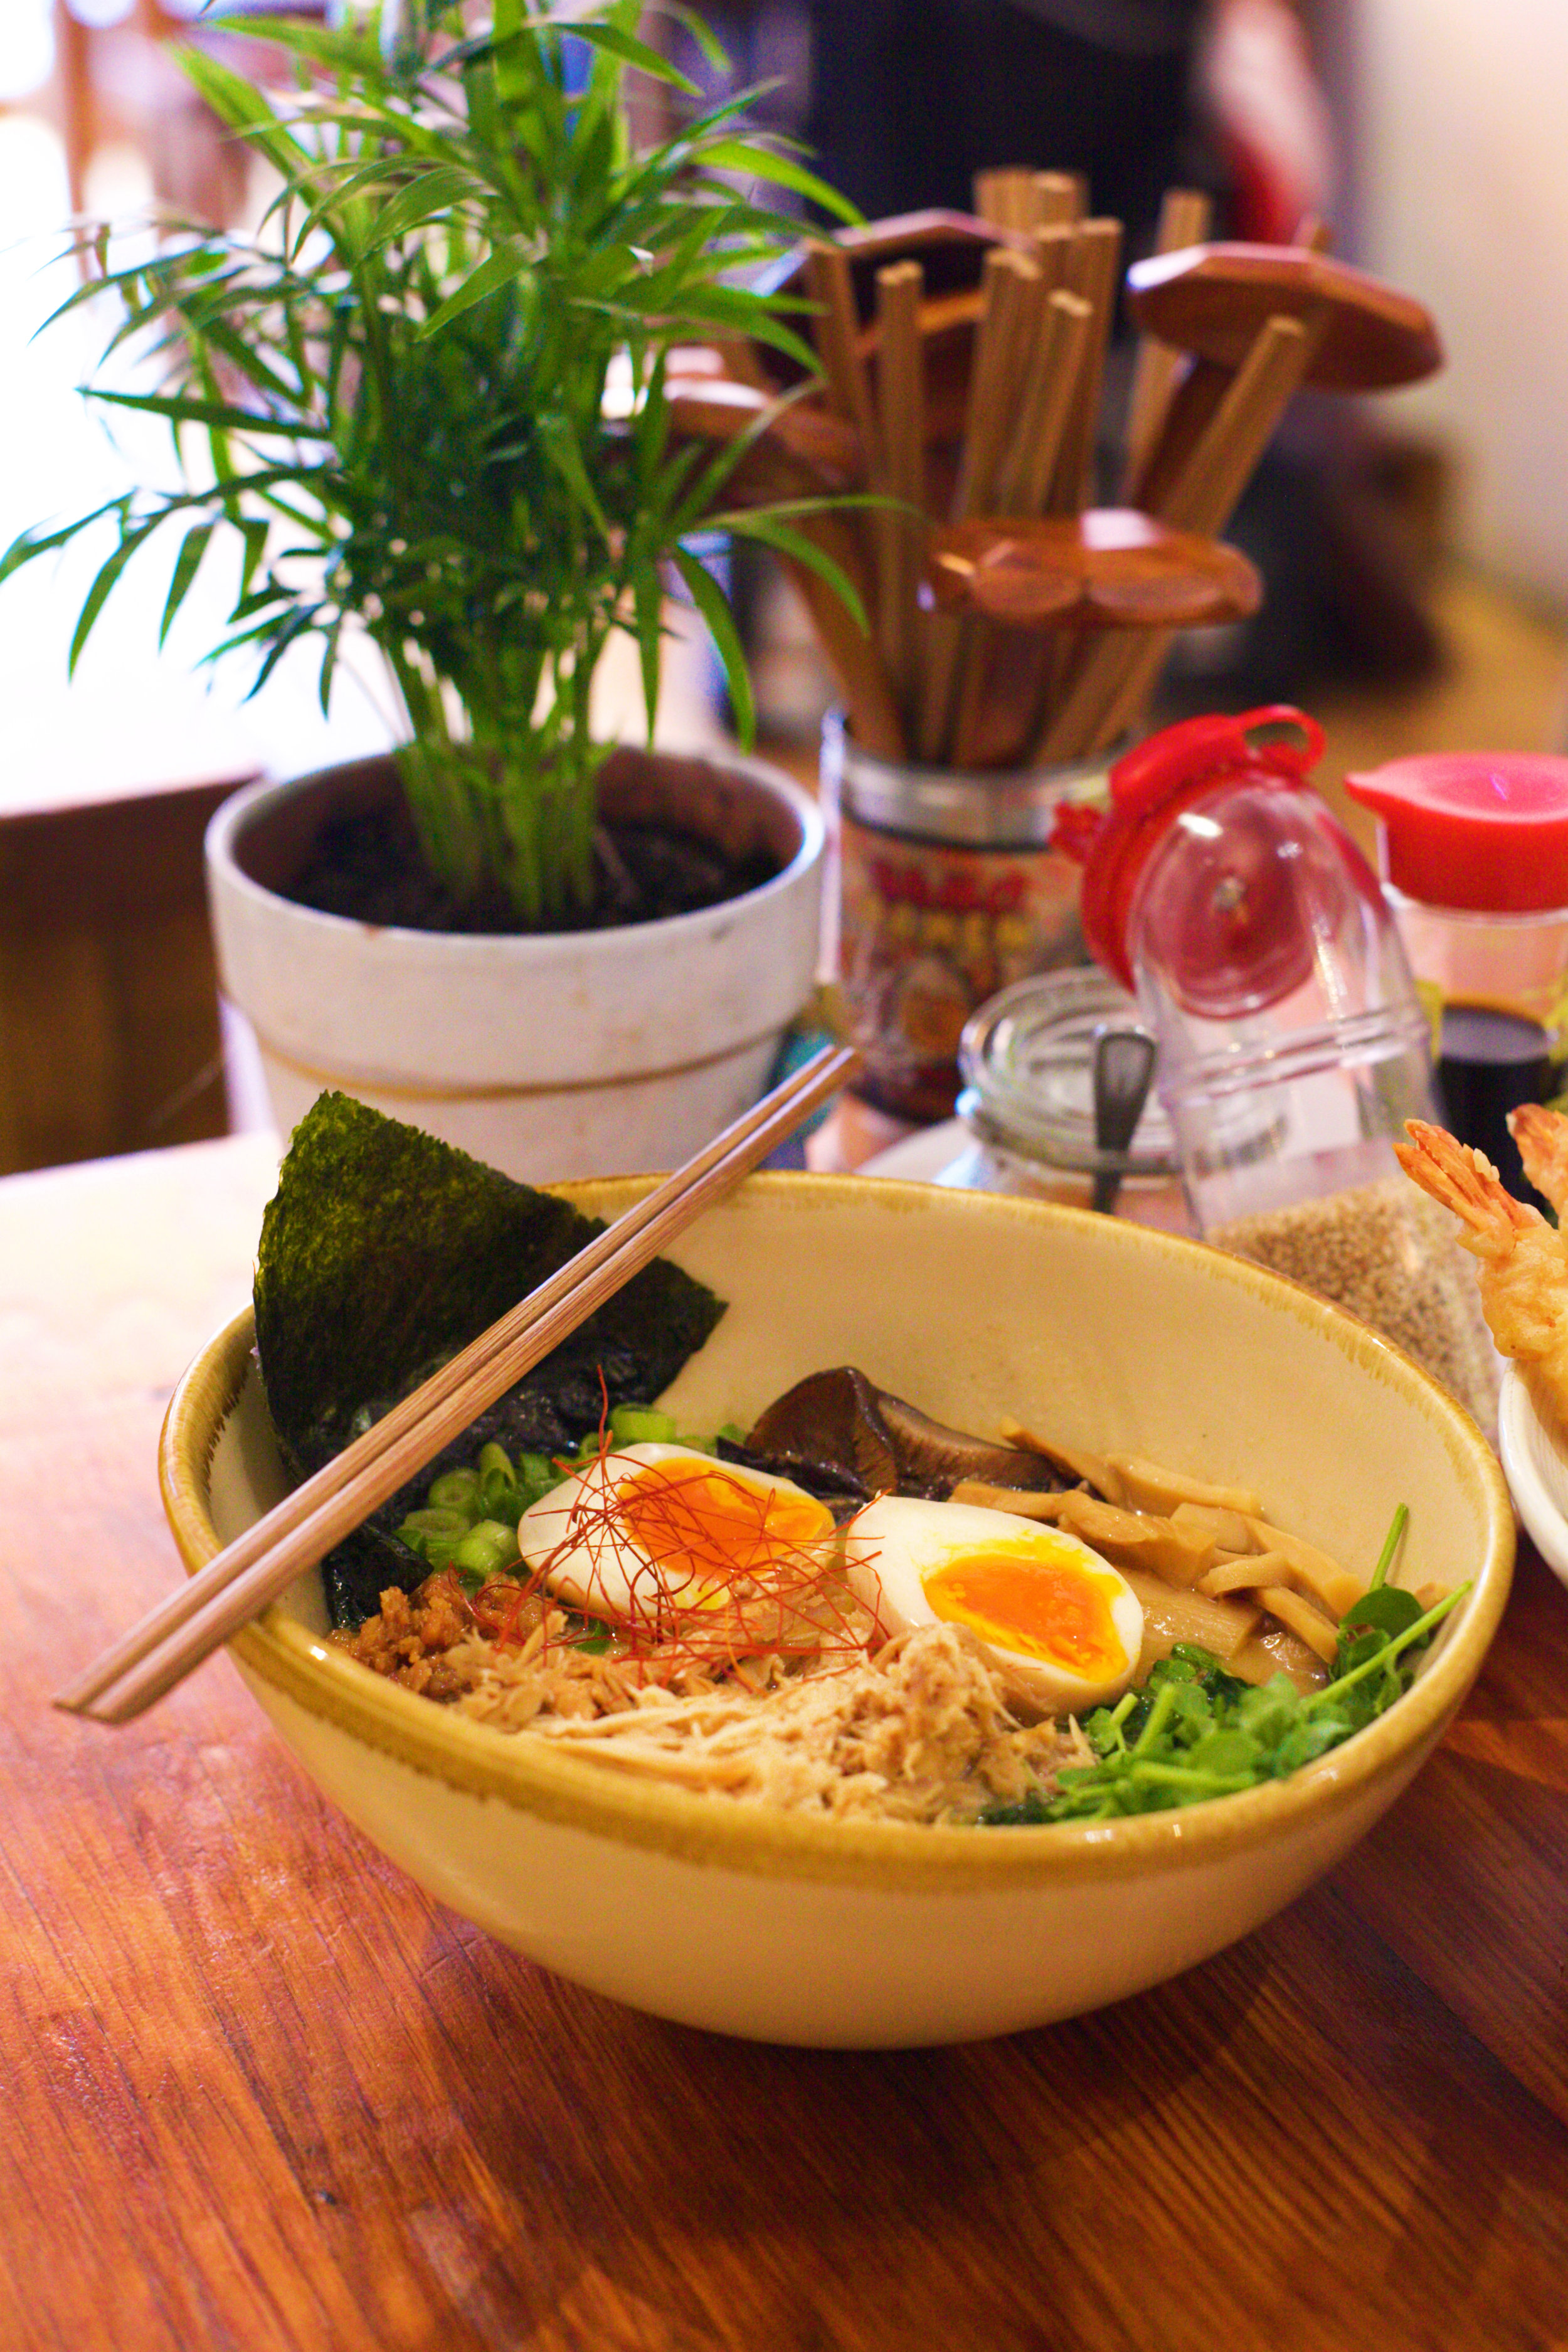 Our amazing chicken sopas ramen is based on a Filipino comfort food classic, often associated with warm memories of family and home-cooked meals.